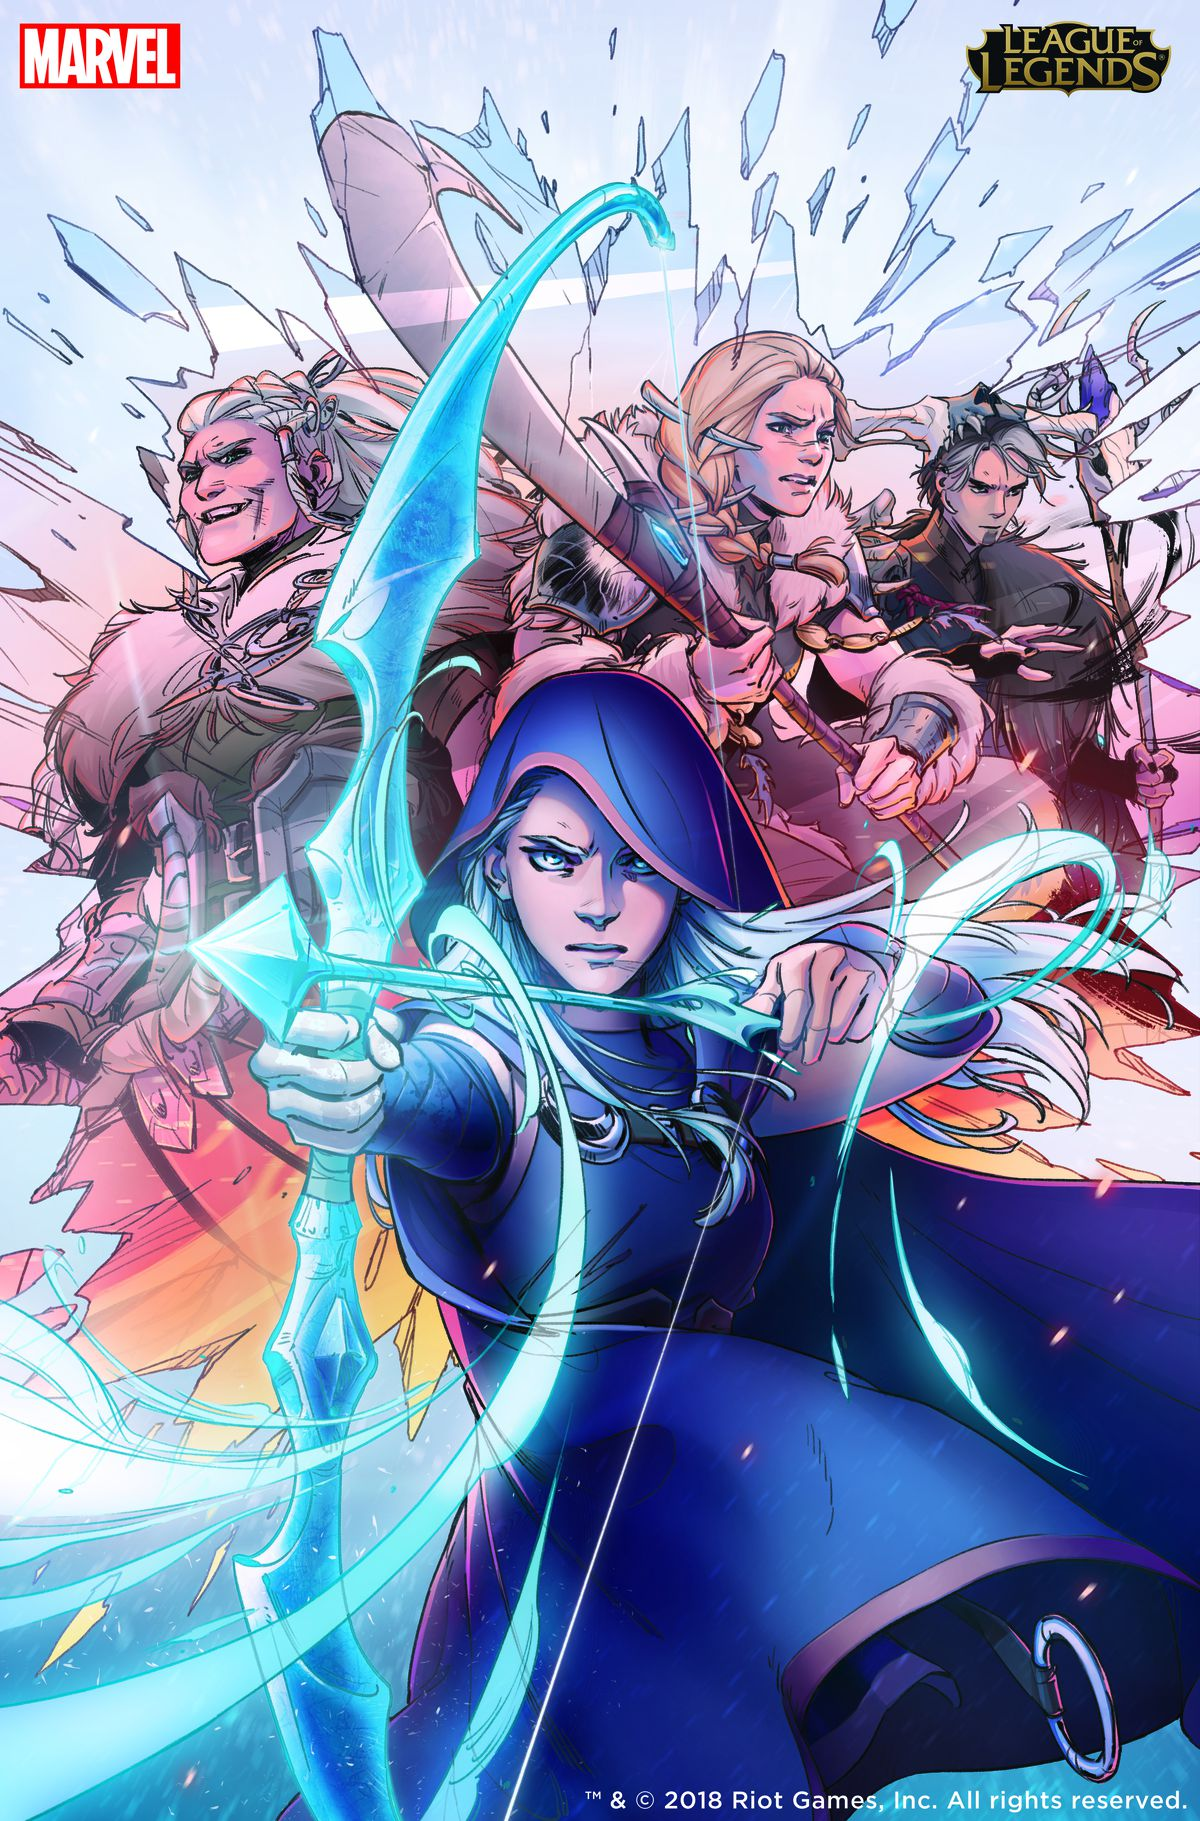 League of Legends turns to Marvel comics to explore the